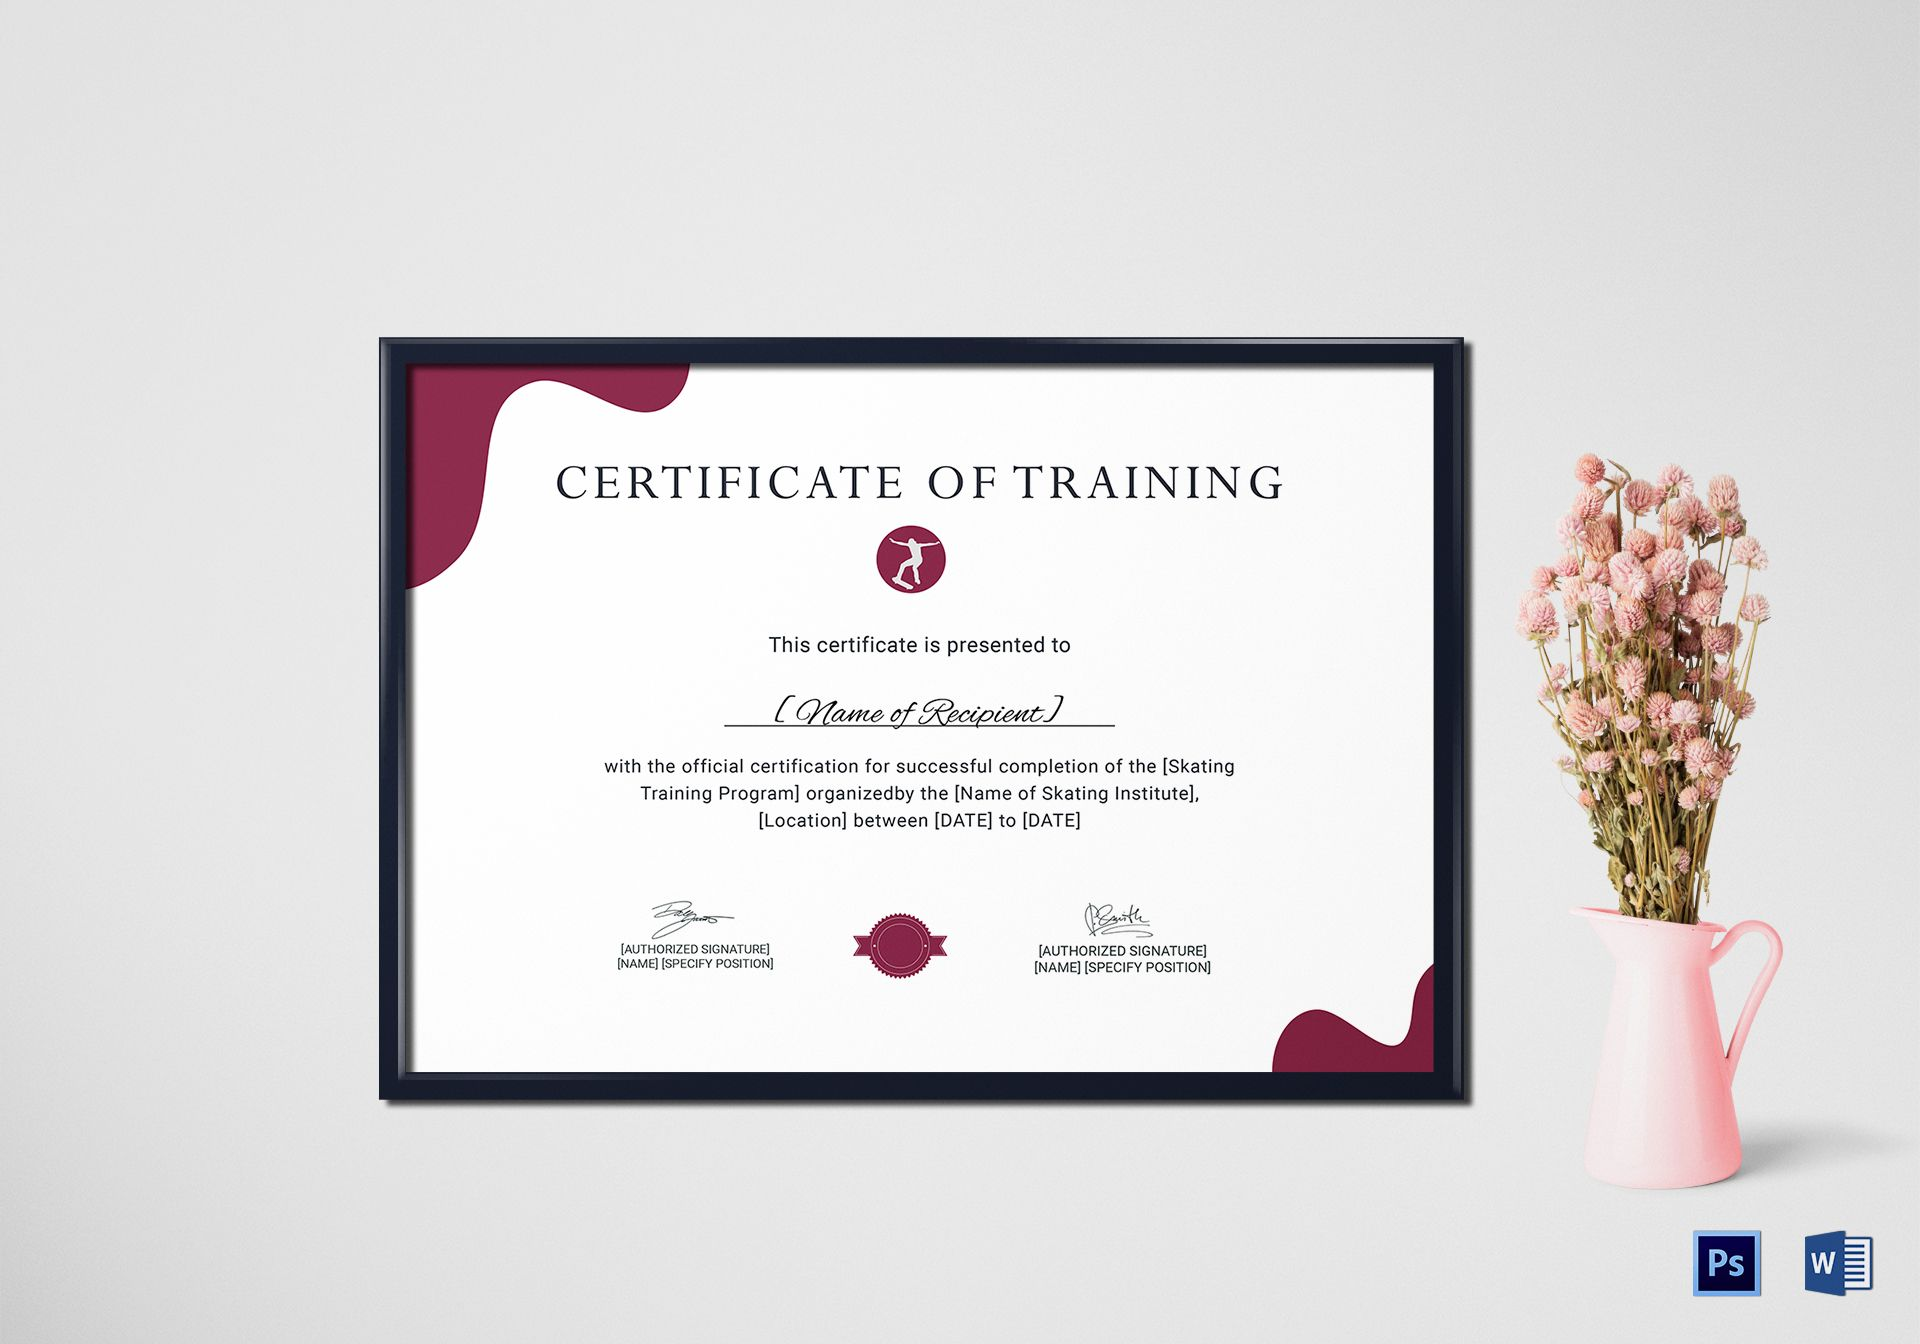 Training Certificate for Skating